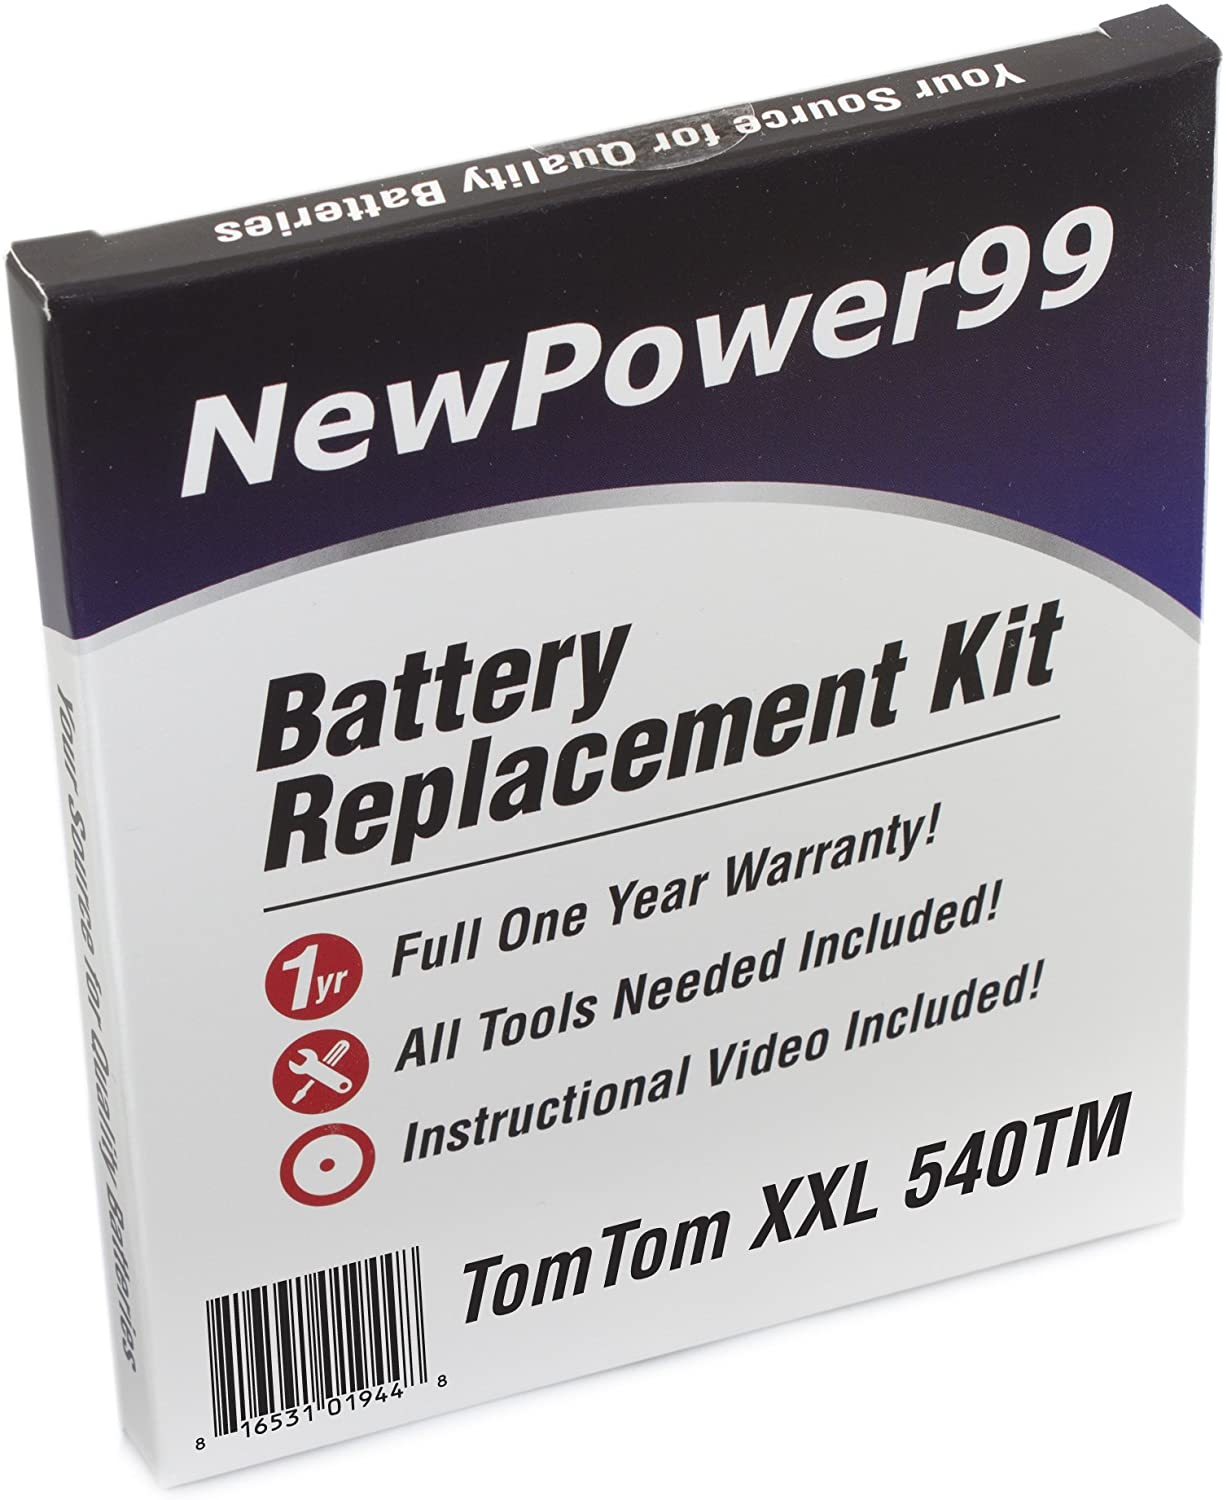 NewPower99 Battery Replacement Kit with Battery, Video Instructions and Tools for Tomtom XXL 540TM